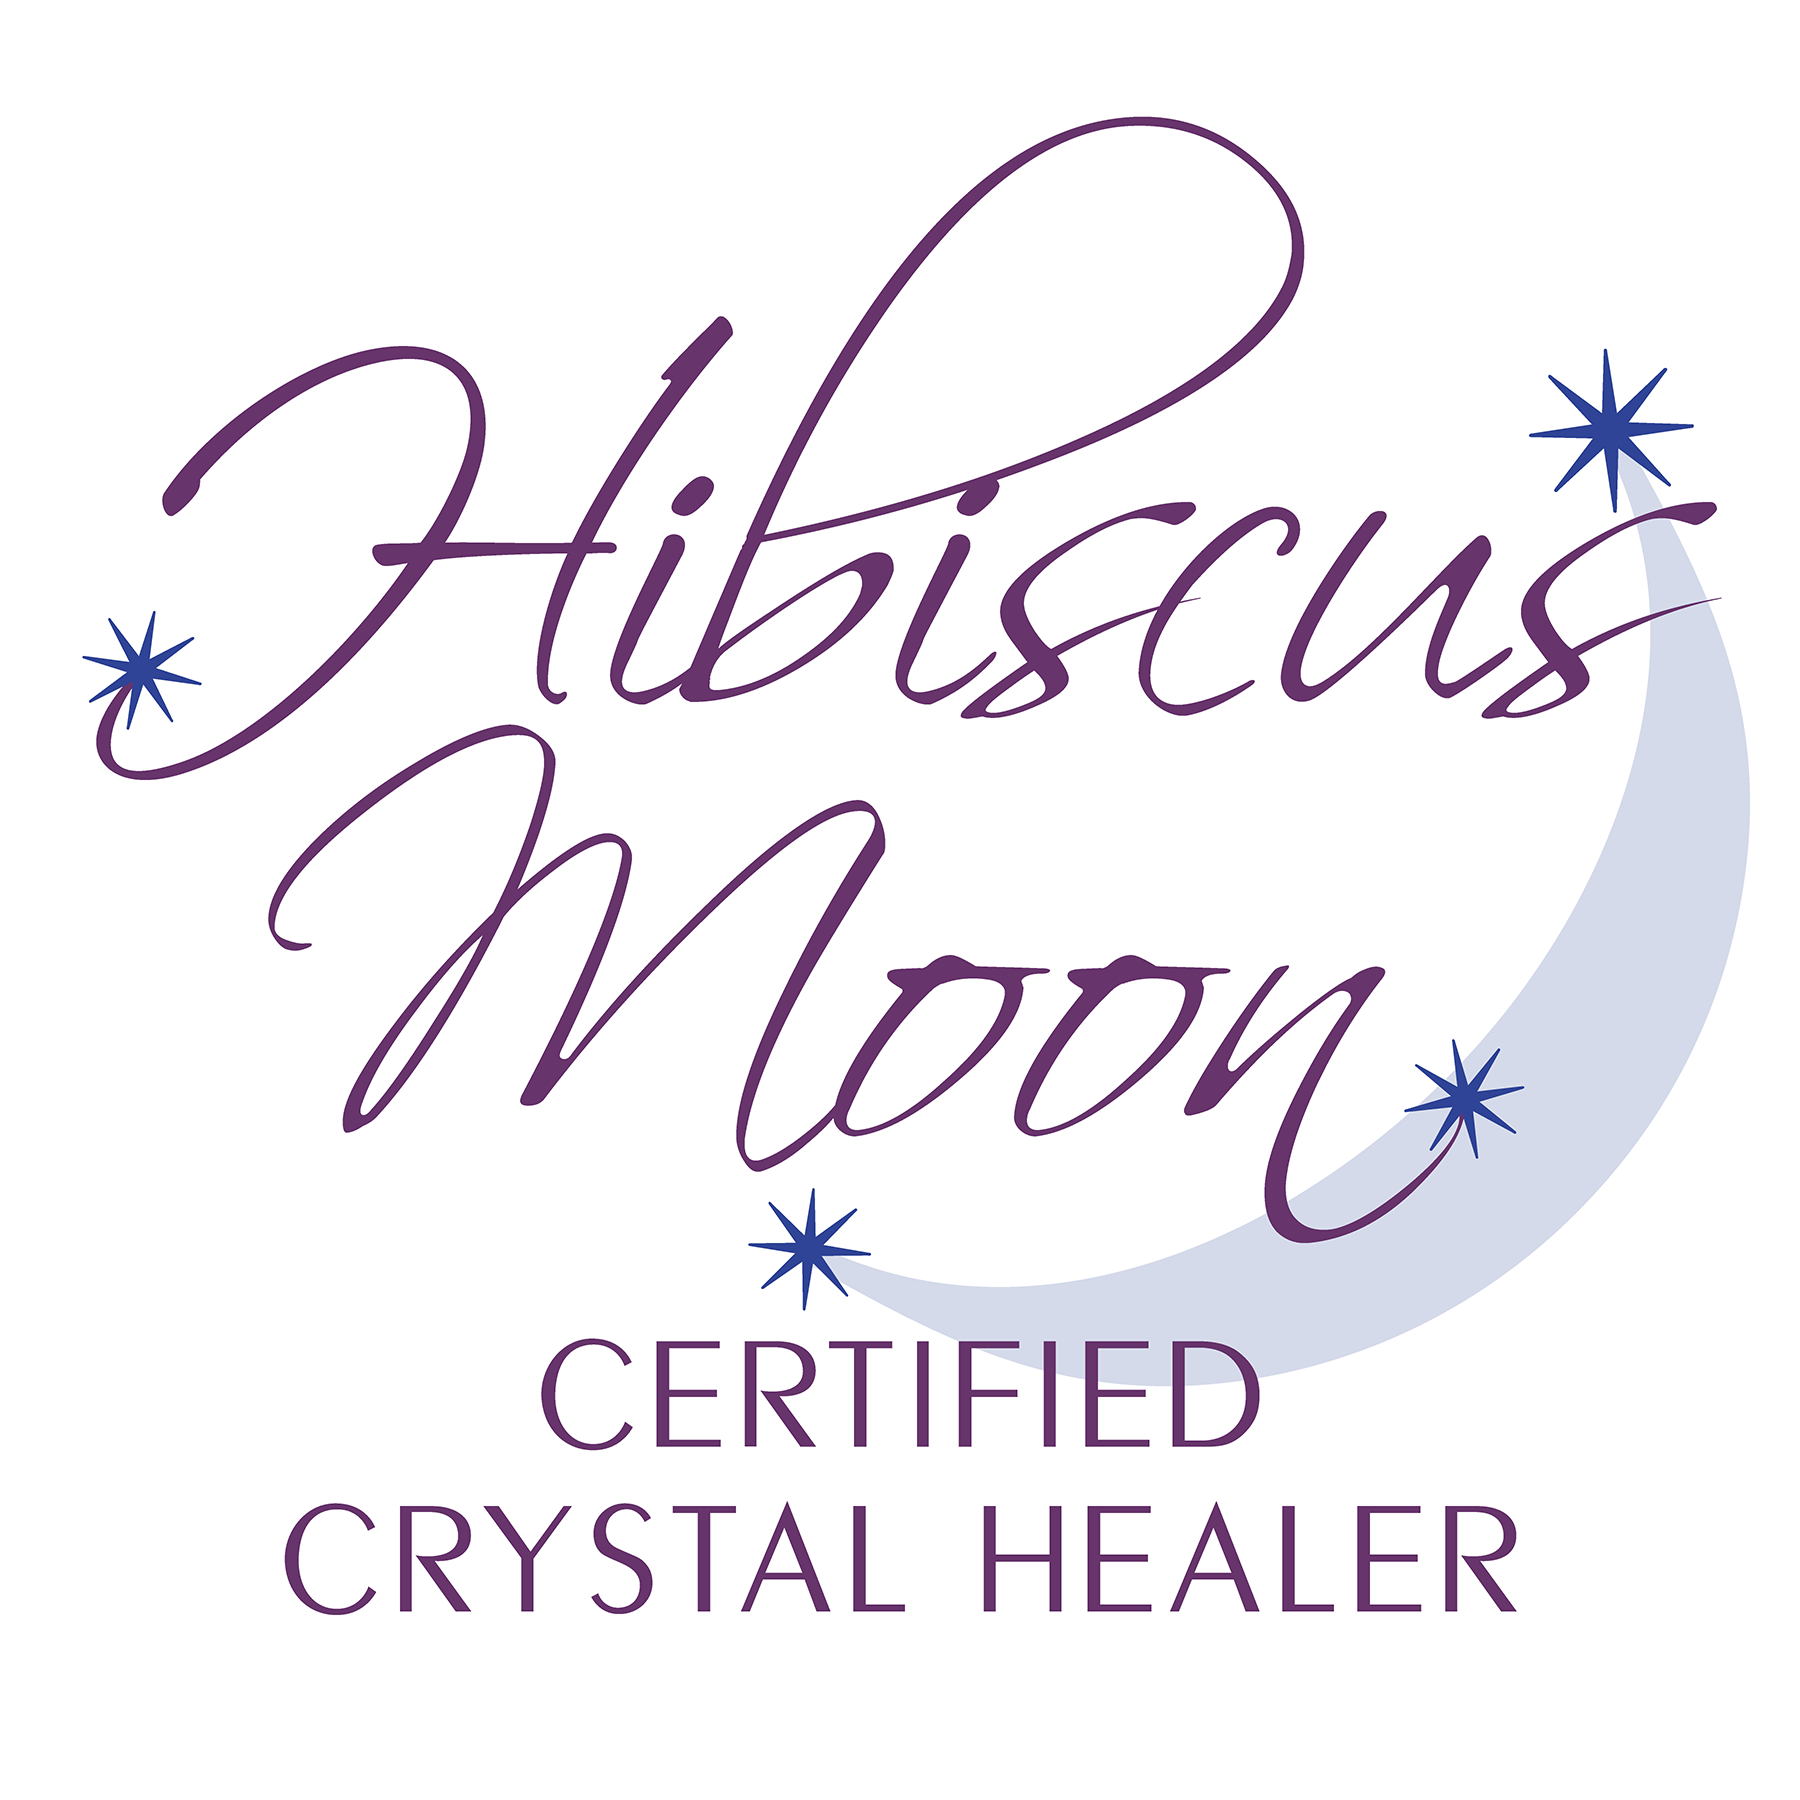 Crystal Healing now offered at Beau Choix